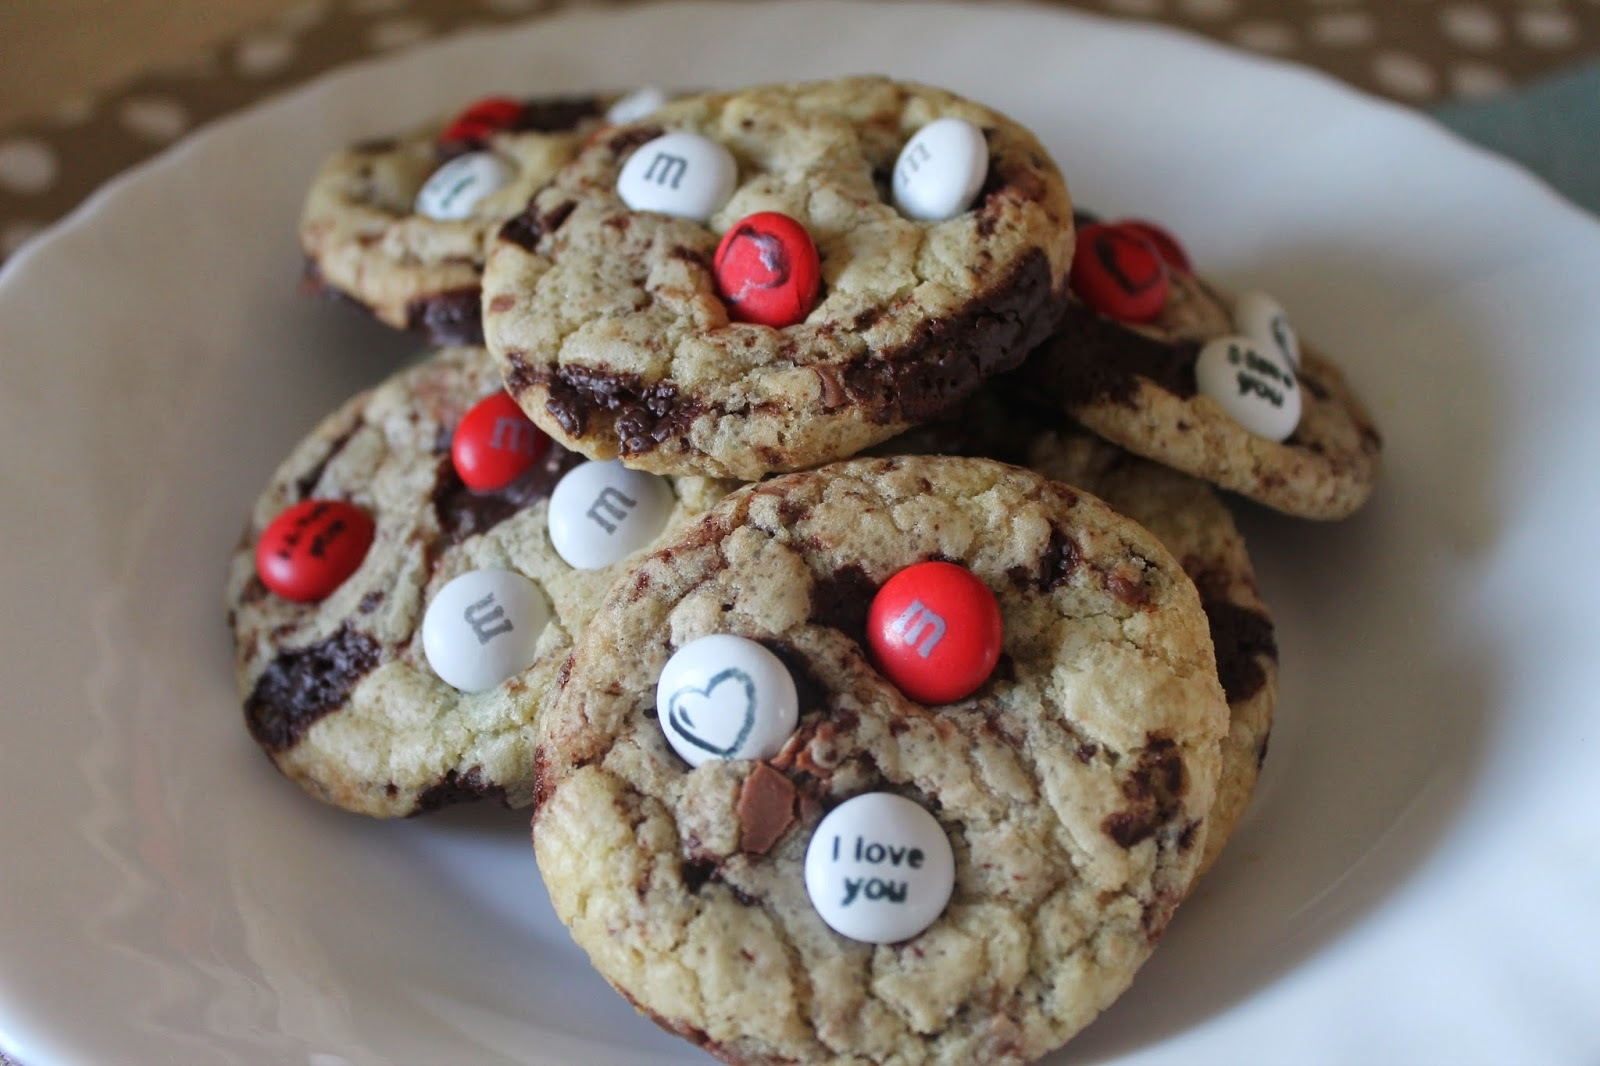 I Love You - M&m's cookies